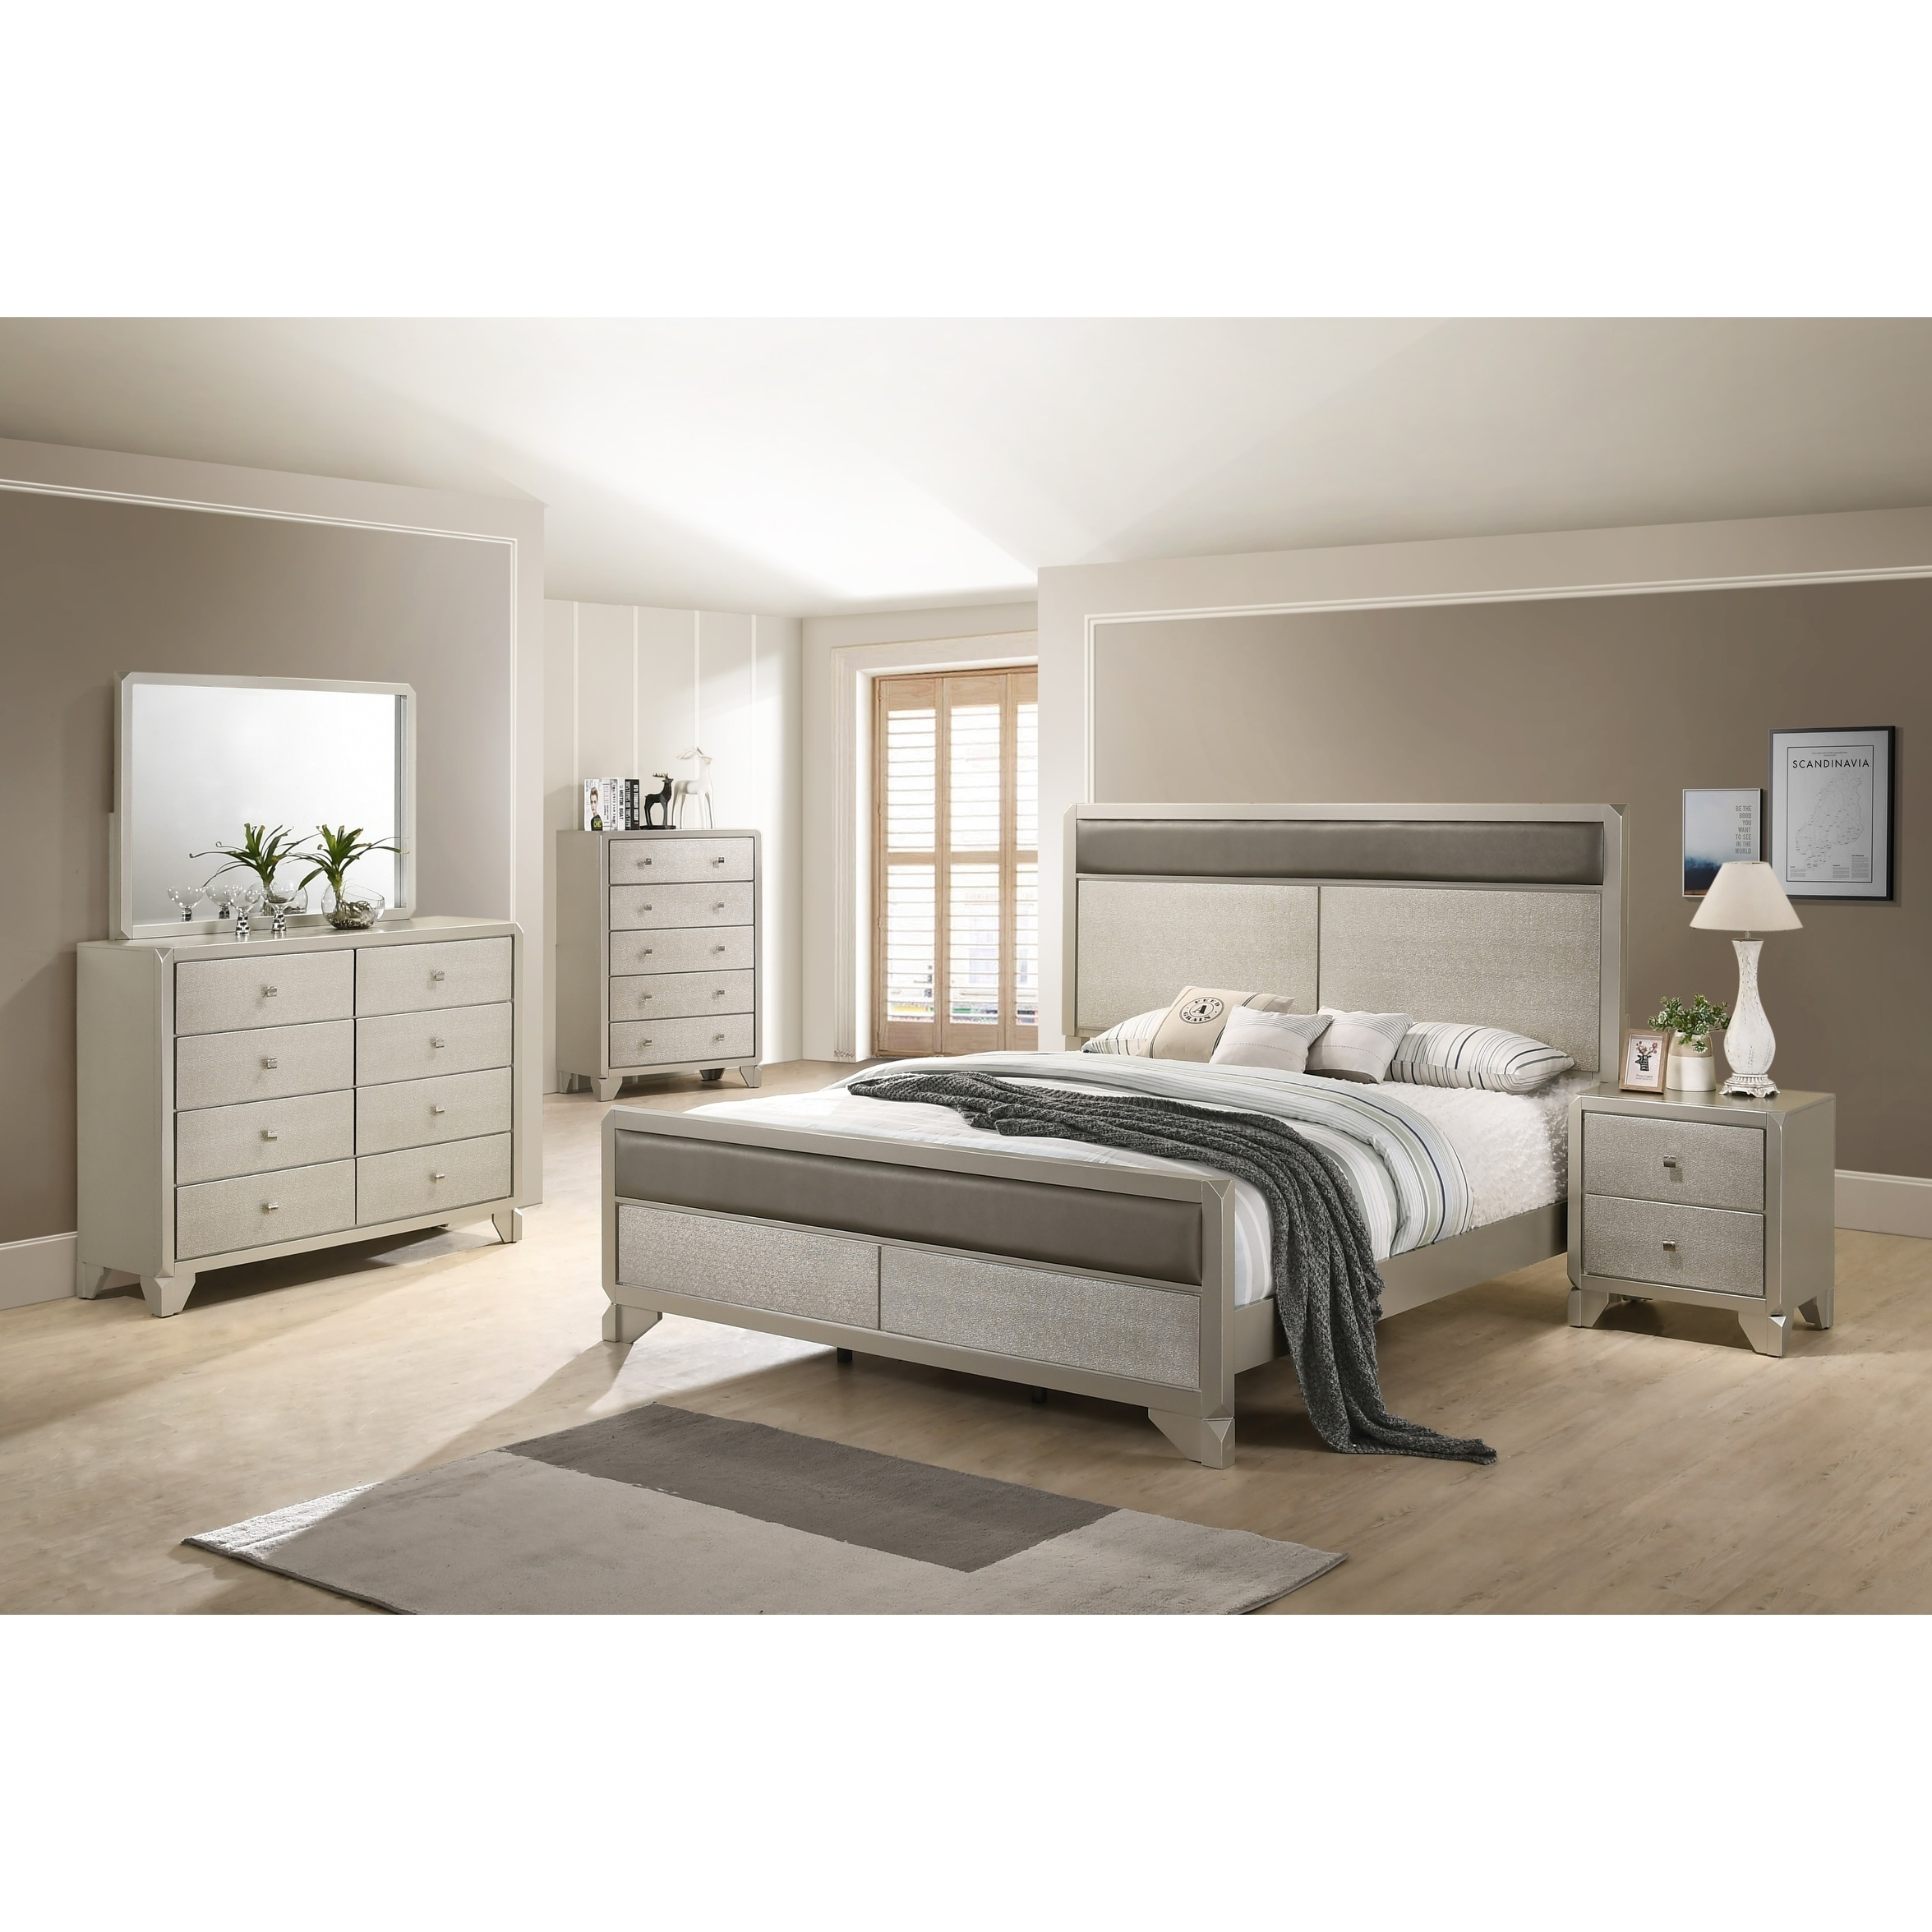 bedroom ashby sets brands panel used in place ky sampler tower overstock room bay white discontinued mattress lexington outlet hills victorian set oyster stores dining armoire childrens furniture magnussen top arbor upholstered patina